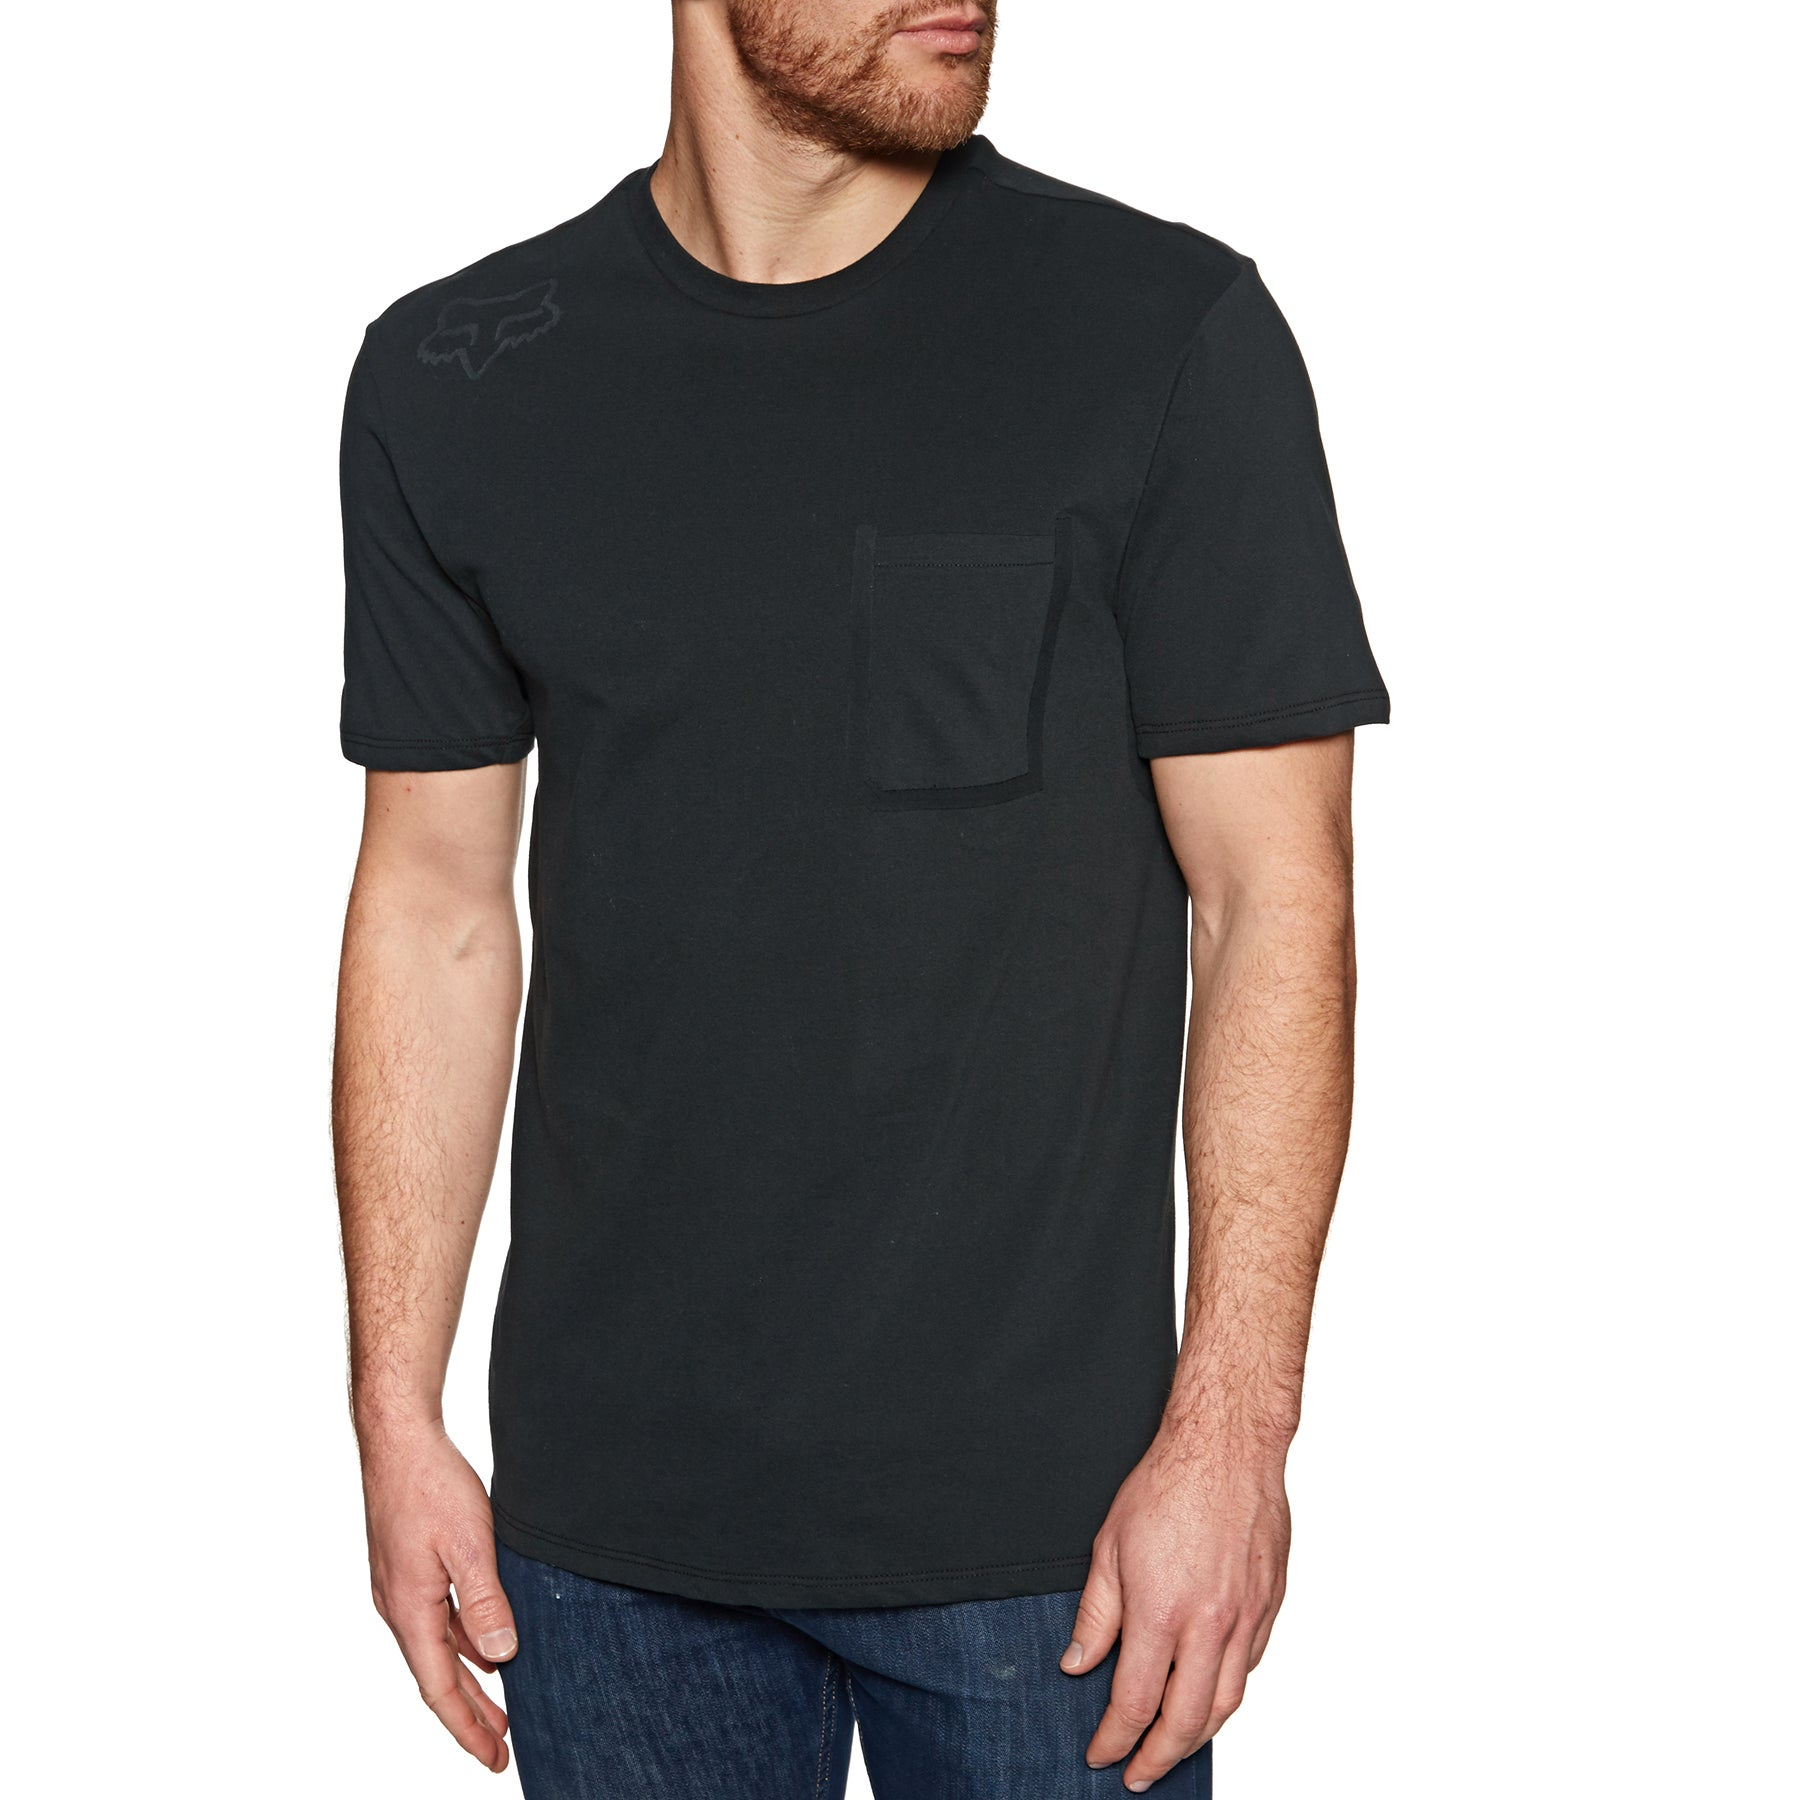 Fox Racing Redplate 360 Airline Mens Short Sleeve T-Shirt Black//Black